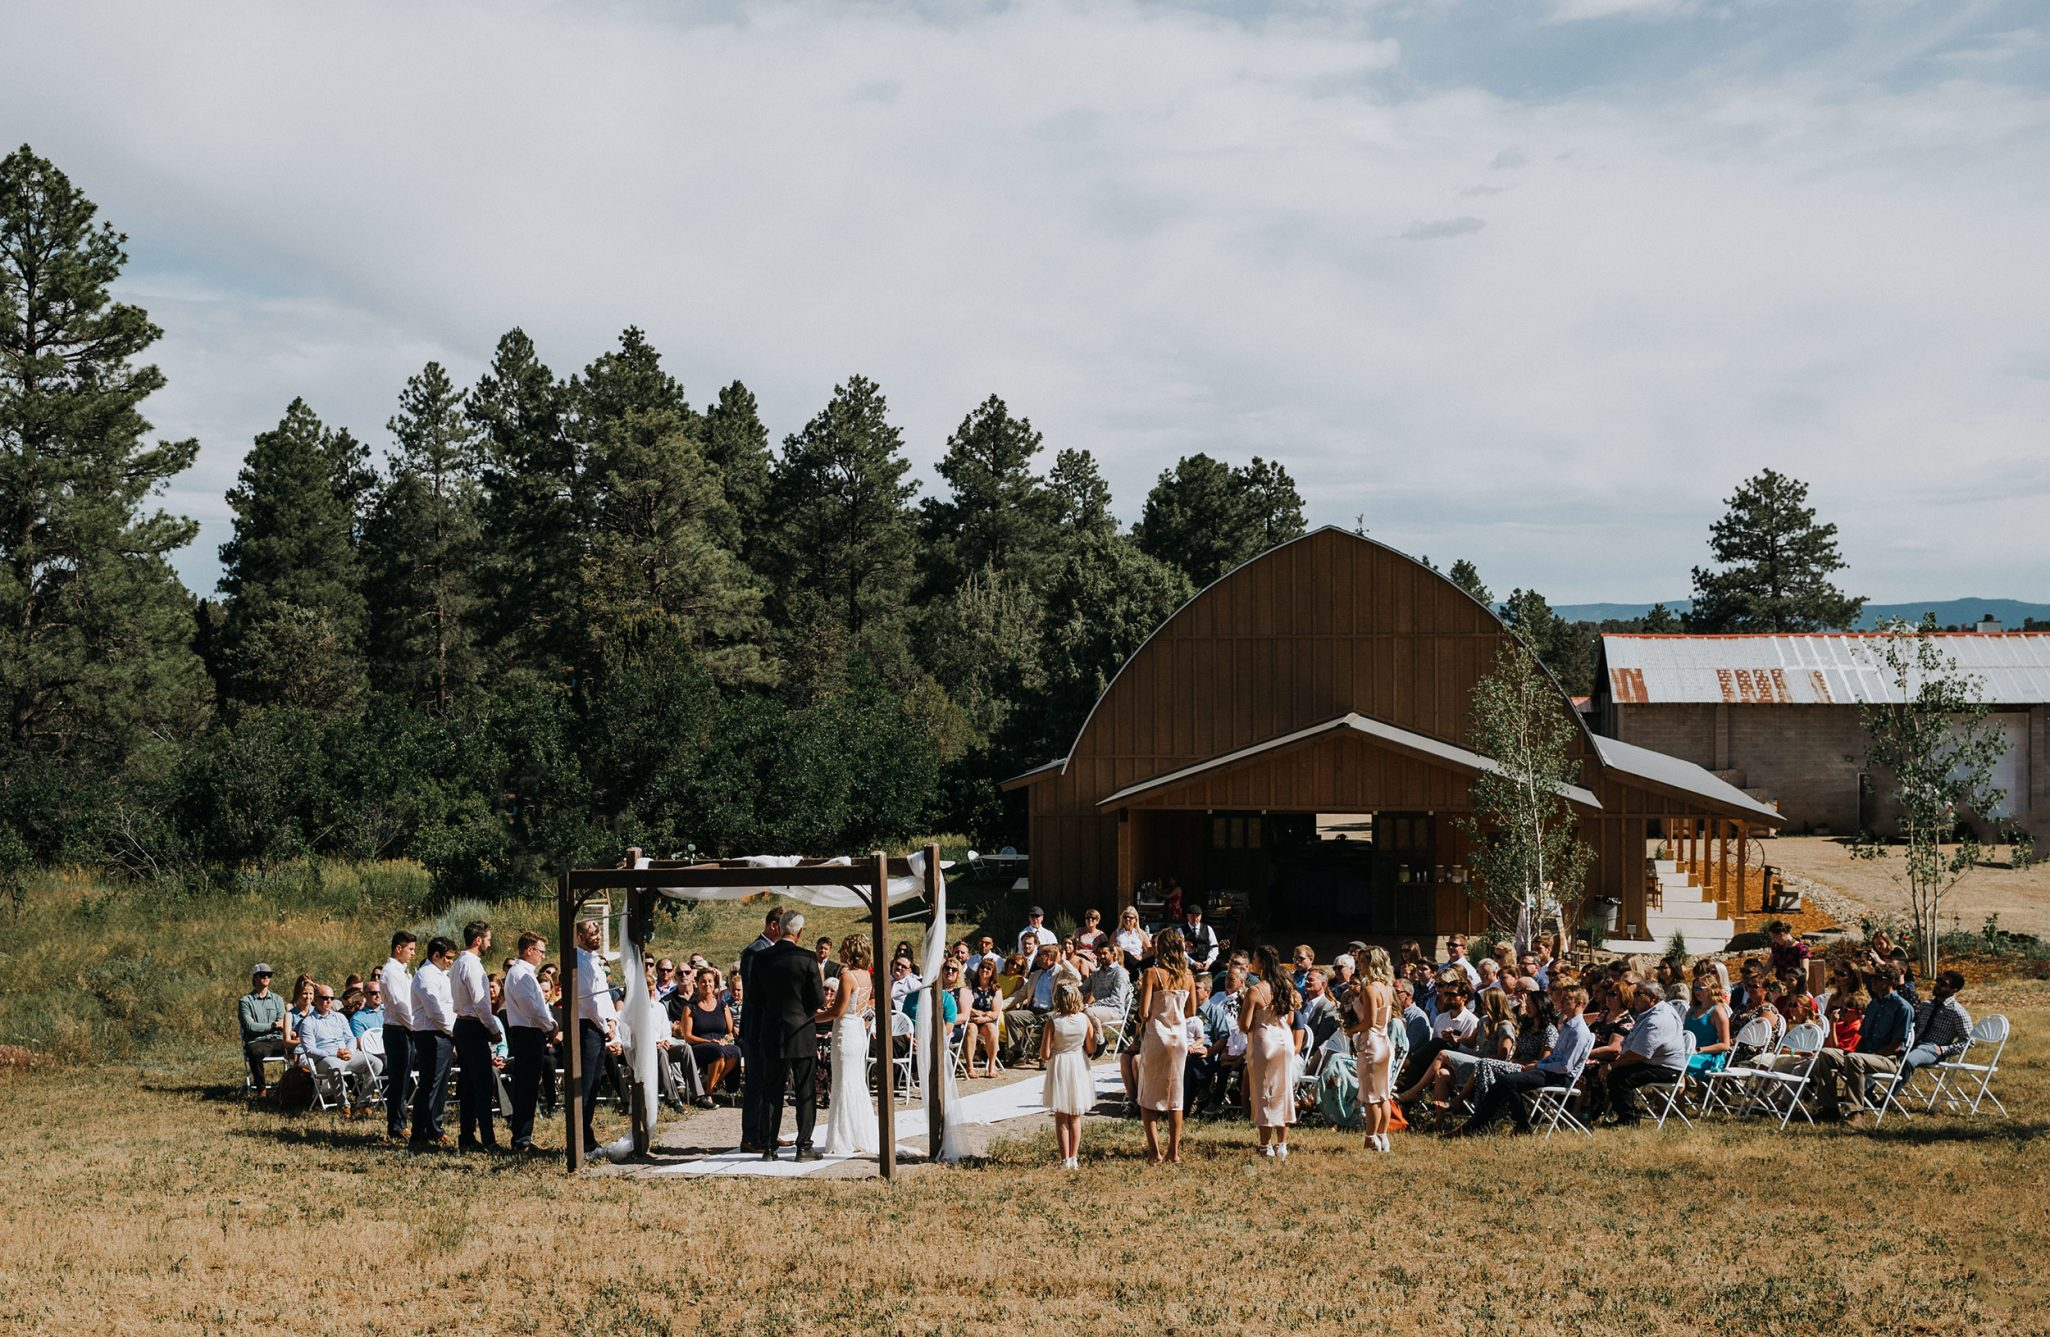 Ceremony at Reising Stage wedding venue in Durango, Colorado